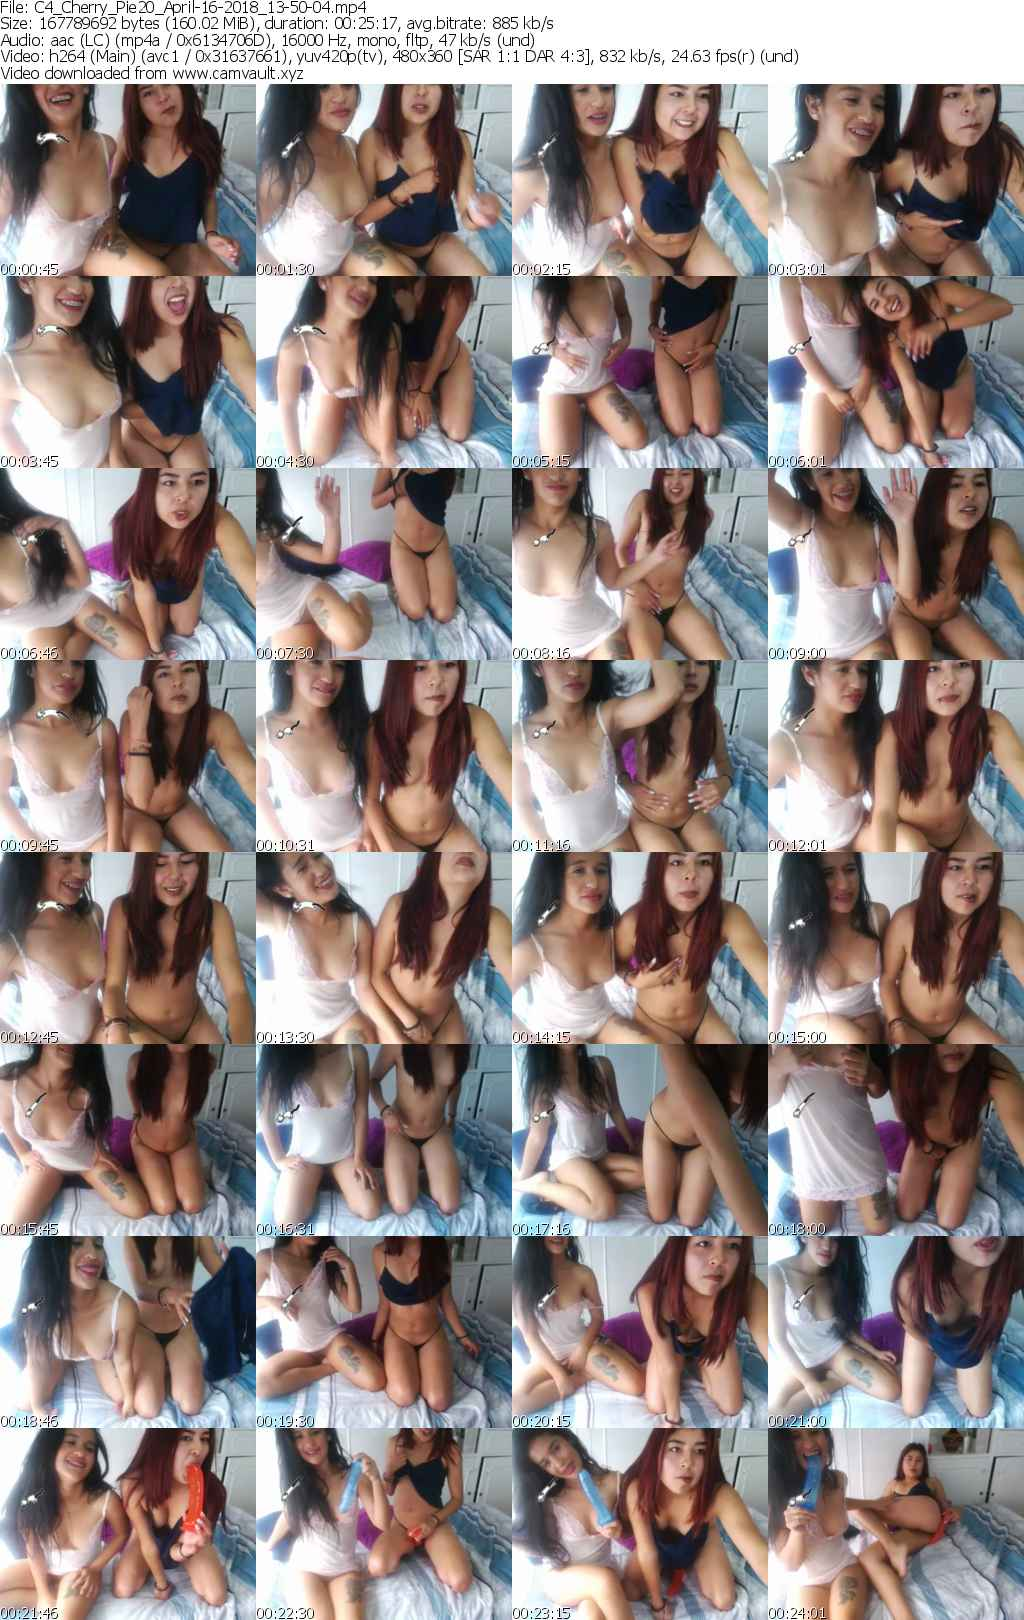 Video preview for model Cherry_Pie20